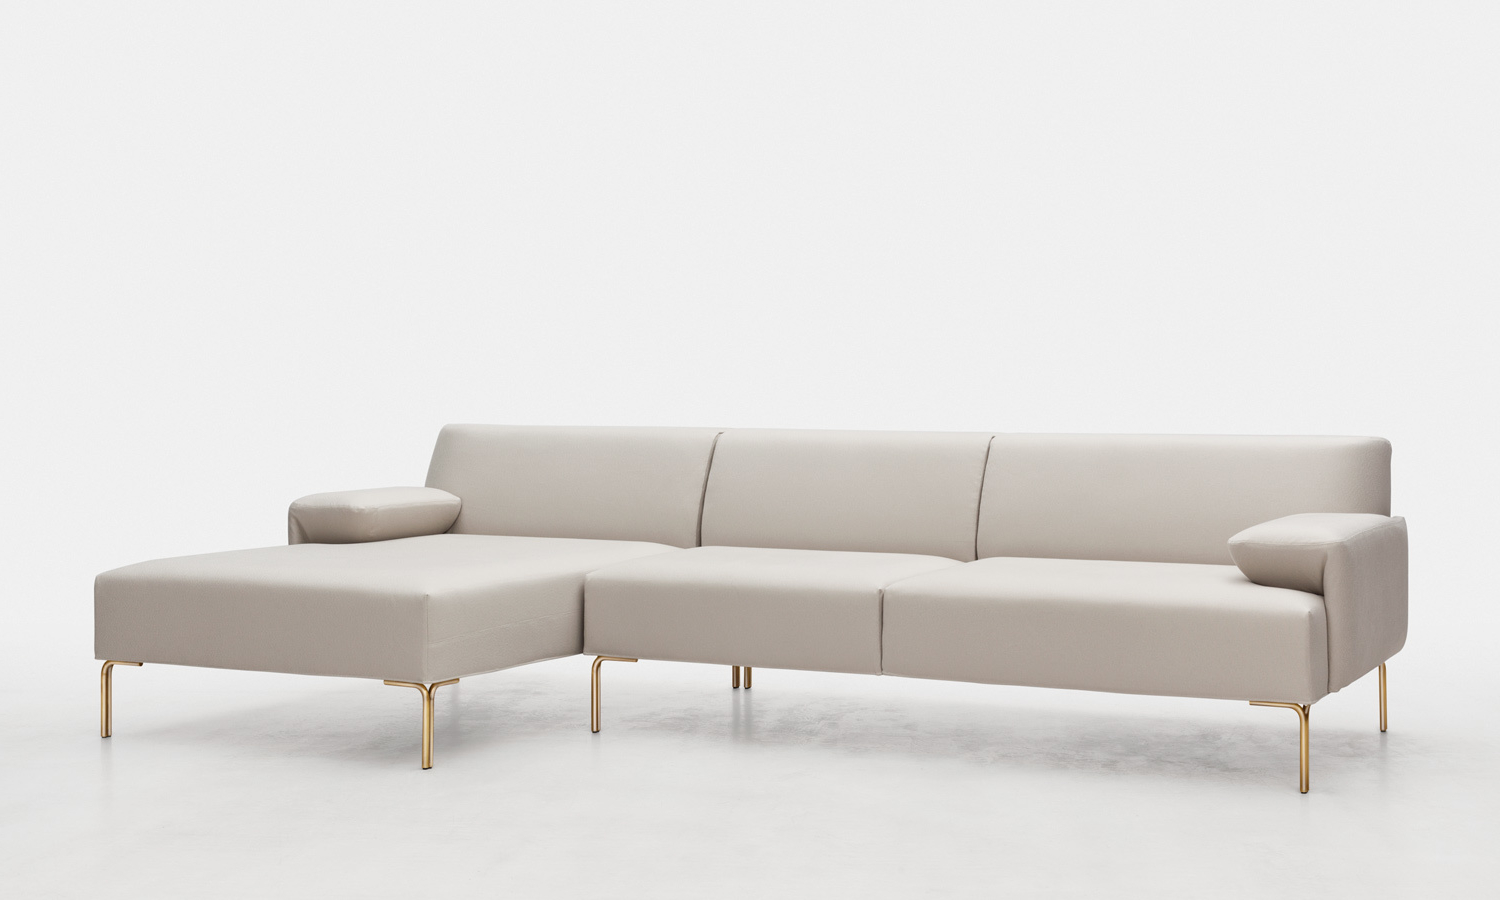 Sofas Mallorca Dddy Joquer Mallorca Joquer Furniture Palma the why Factory